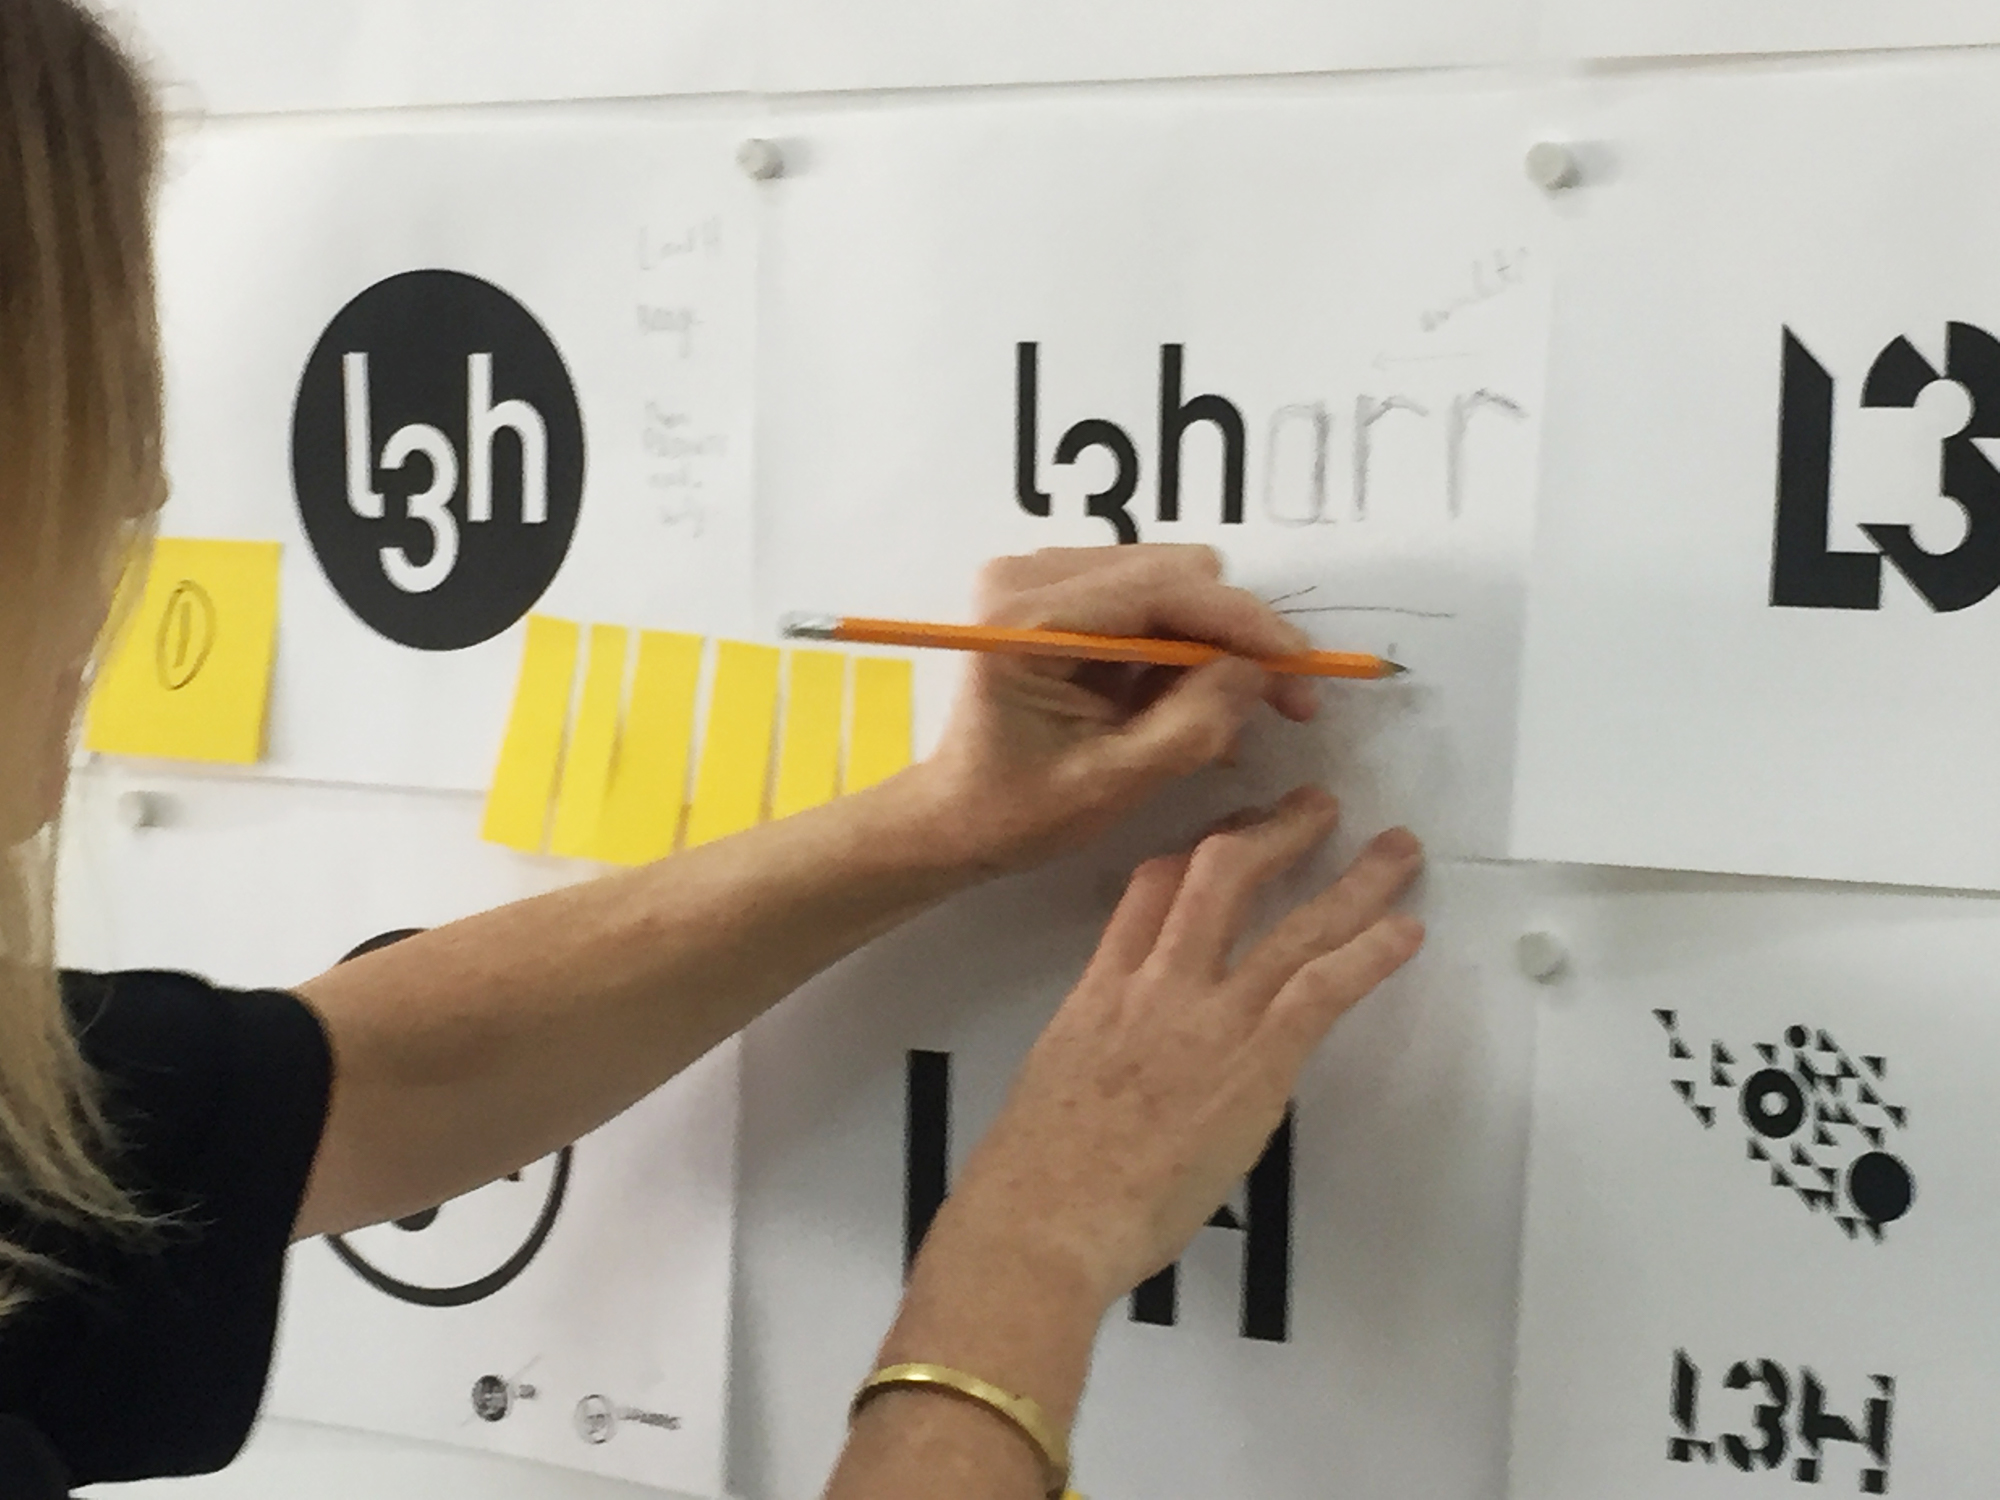 Kat marks up some logos on the wall for L3Harris